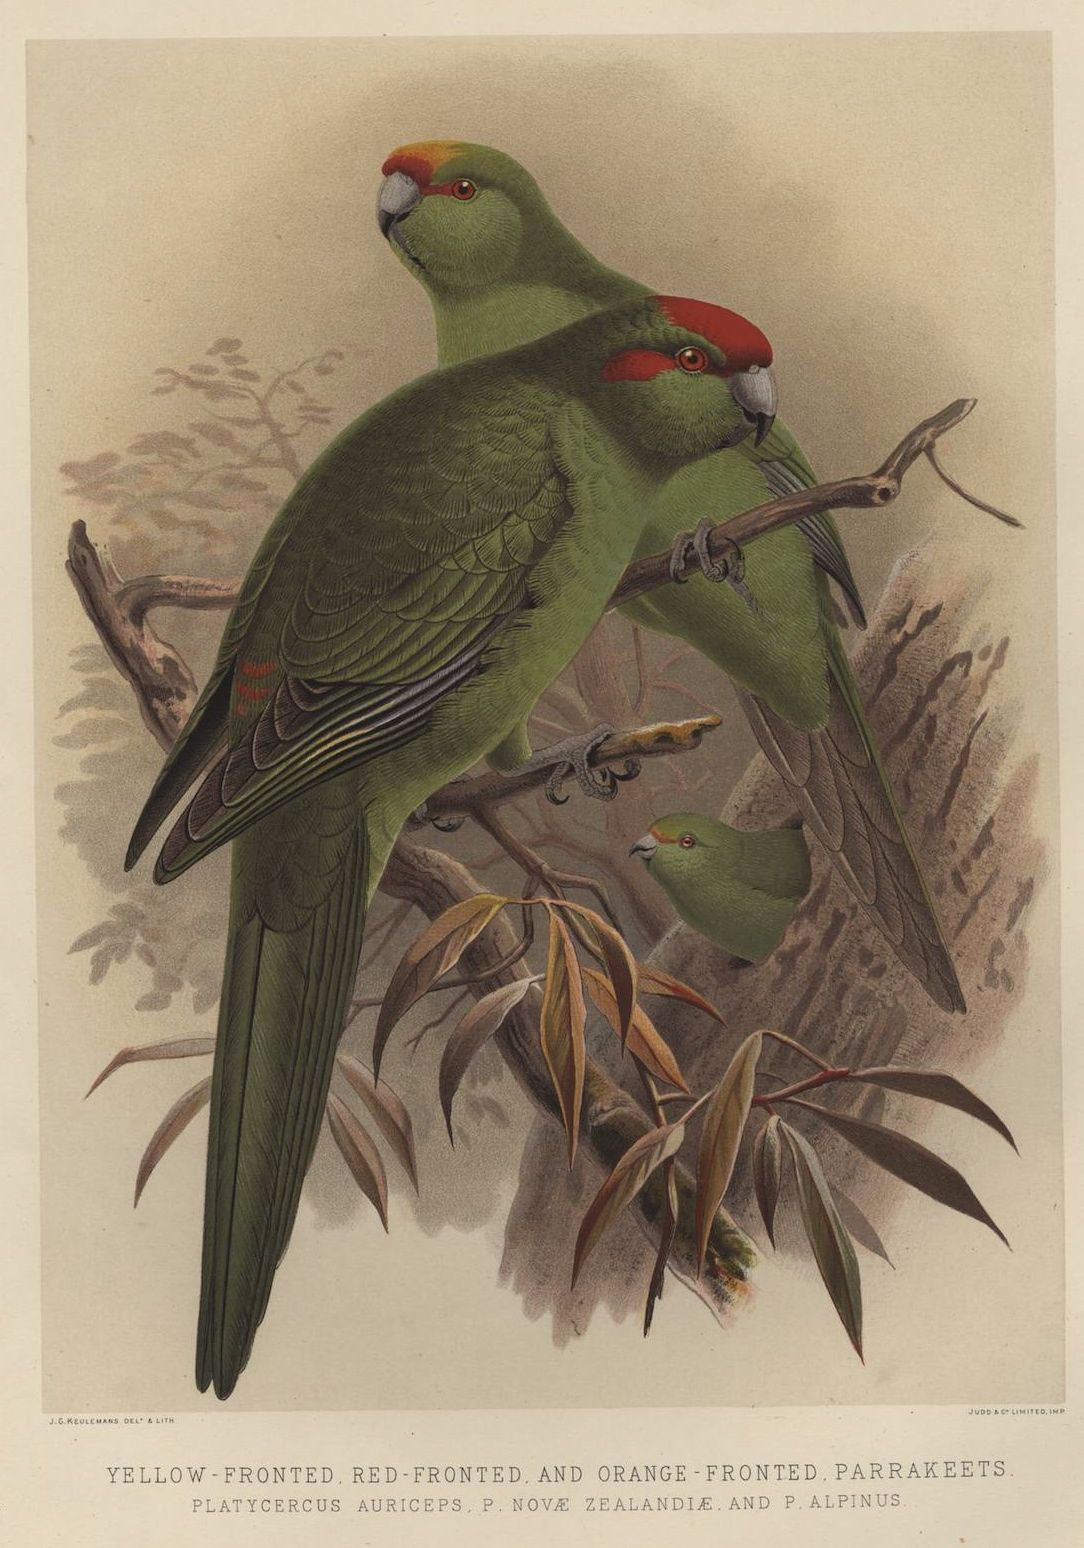 Yellow-fronted, Red-fronted and Orange-fronted Parrakeets